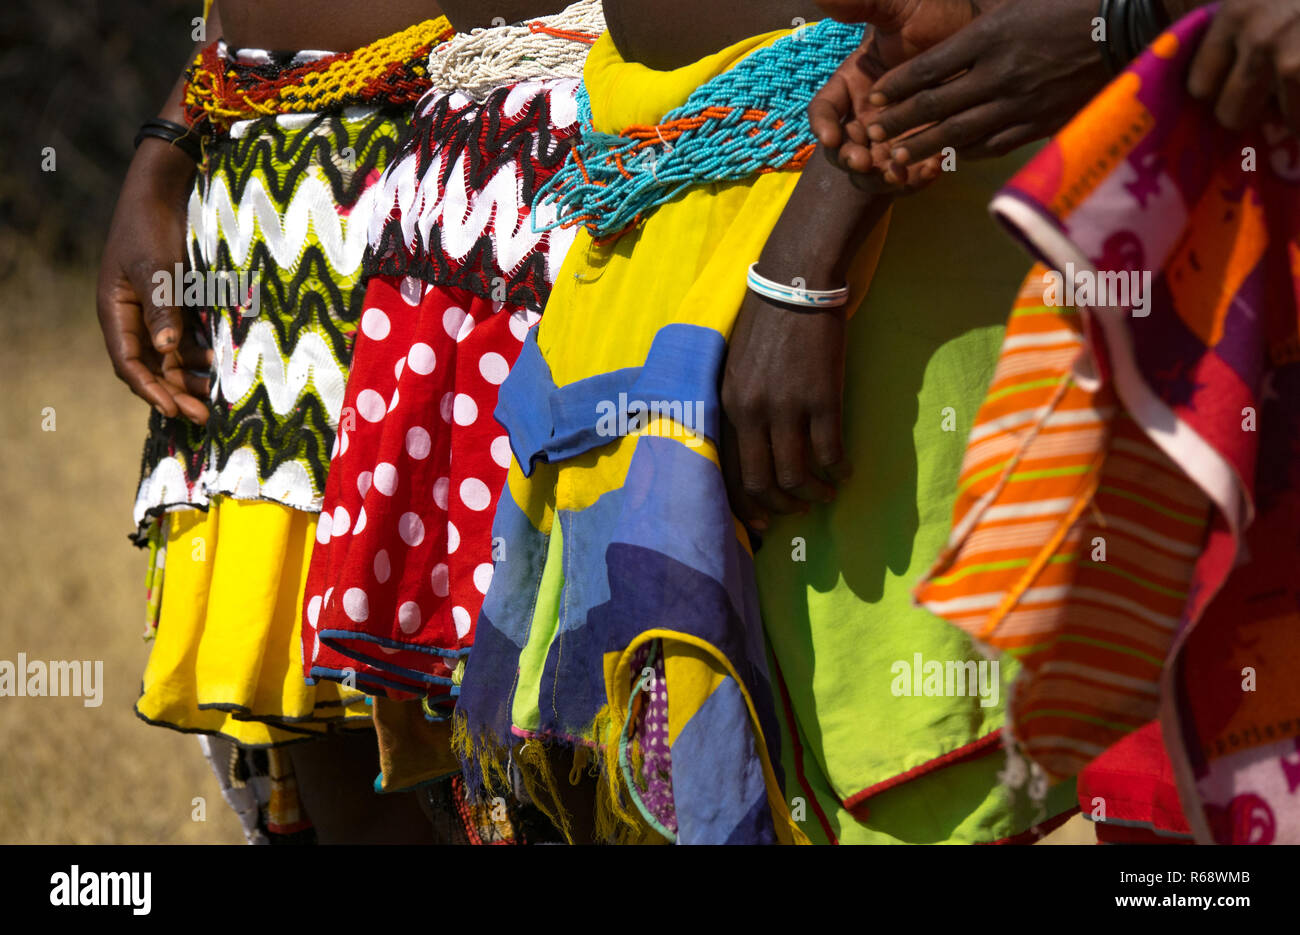 Mudimba tribe women wearing their traditional outfit, Cunene Province, Cahama, Angola - Stock Image